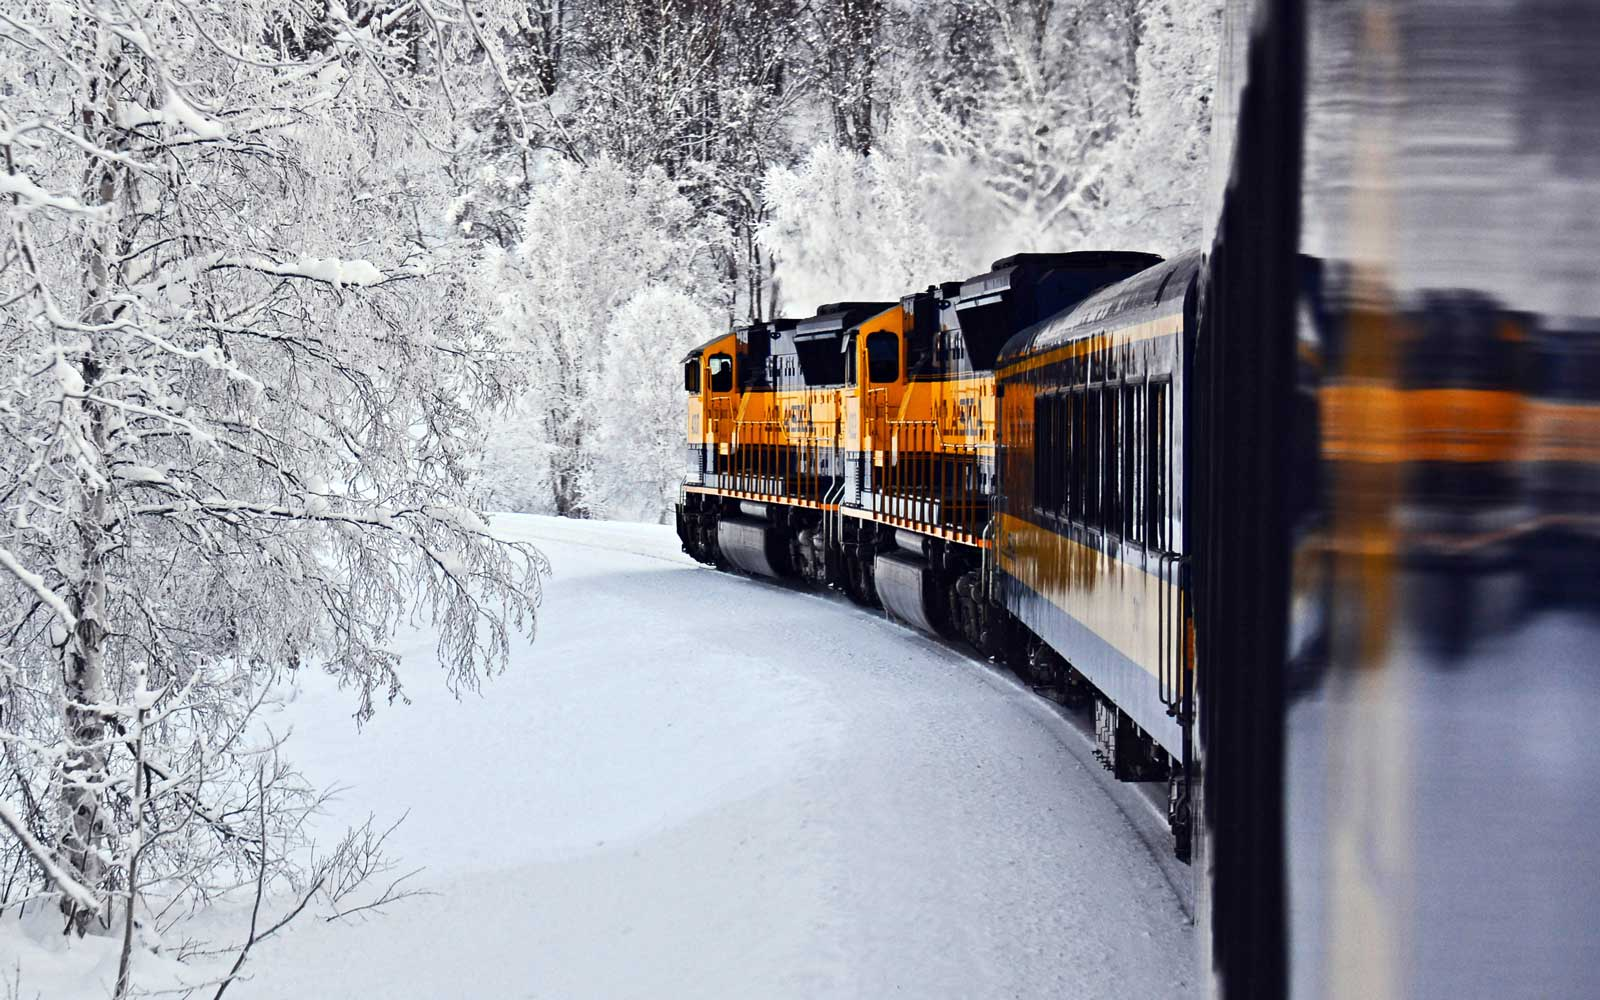 Take the Aurora Train to head to festive events in Alaska while taking in the state's natural scenery.